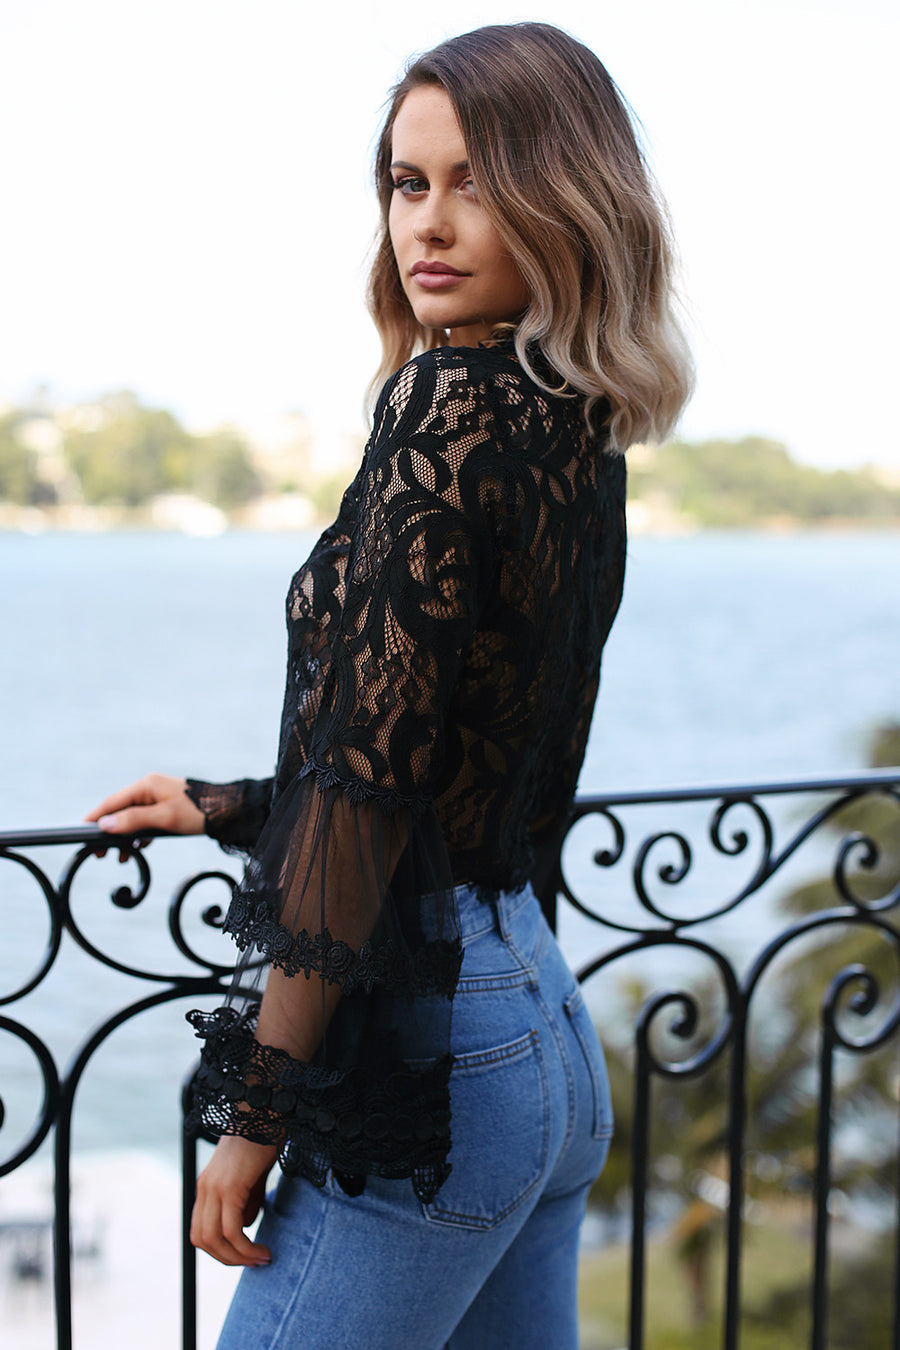 Chancellor Lace Top in Black